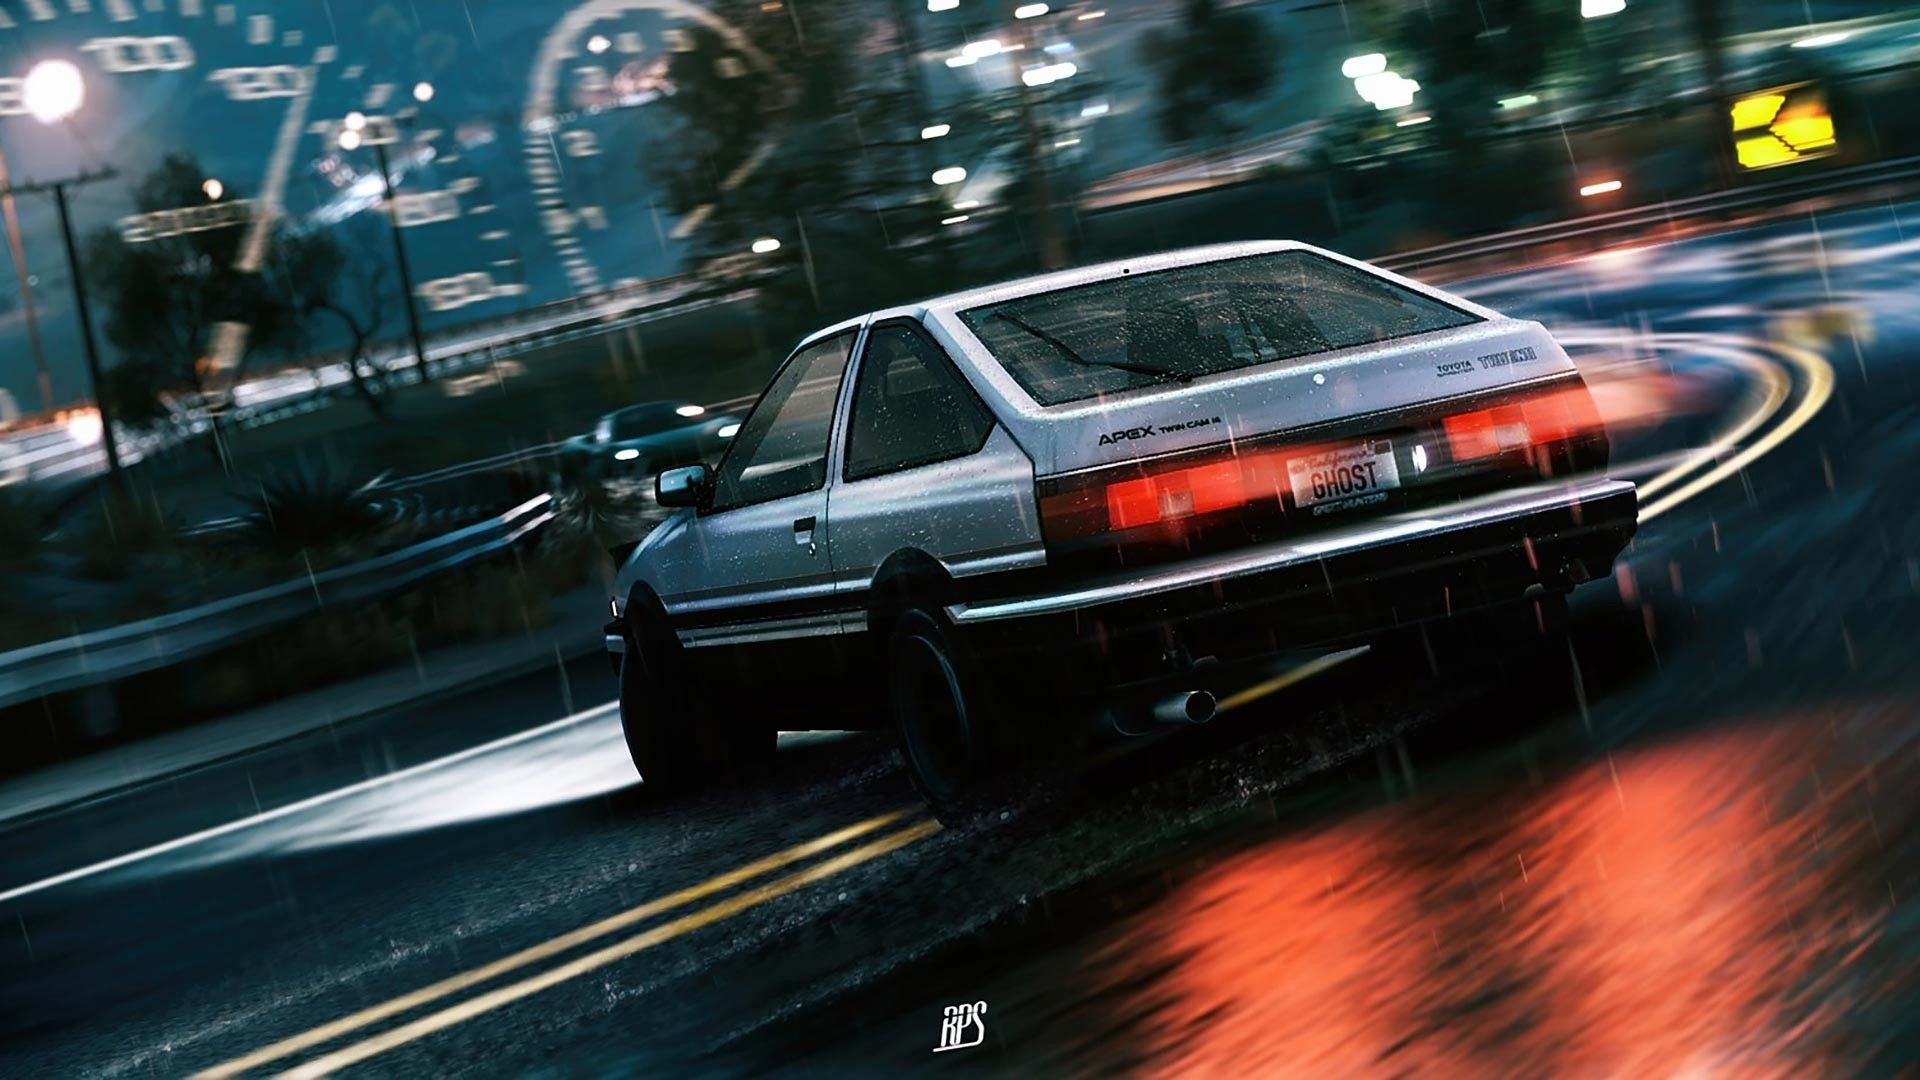 Are You Trying To Find Initial D Wall Paper Below Are 10 Top And Newest Initial D Wall Paper For Desktop Computer Wi Initial D Jdm Wallpaper Full Hd Wallpaper